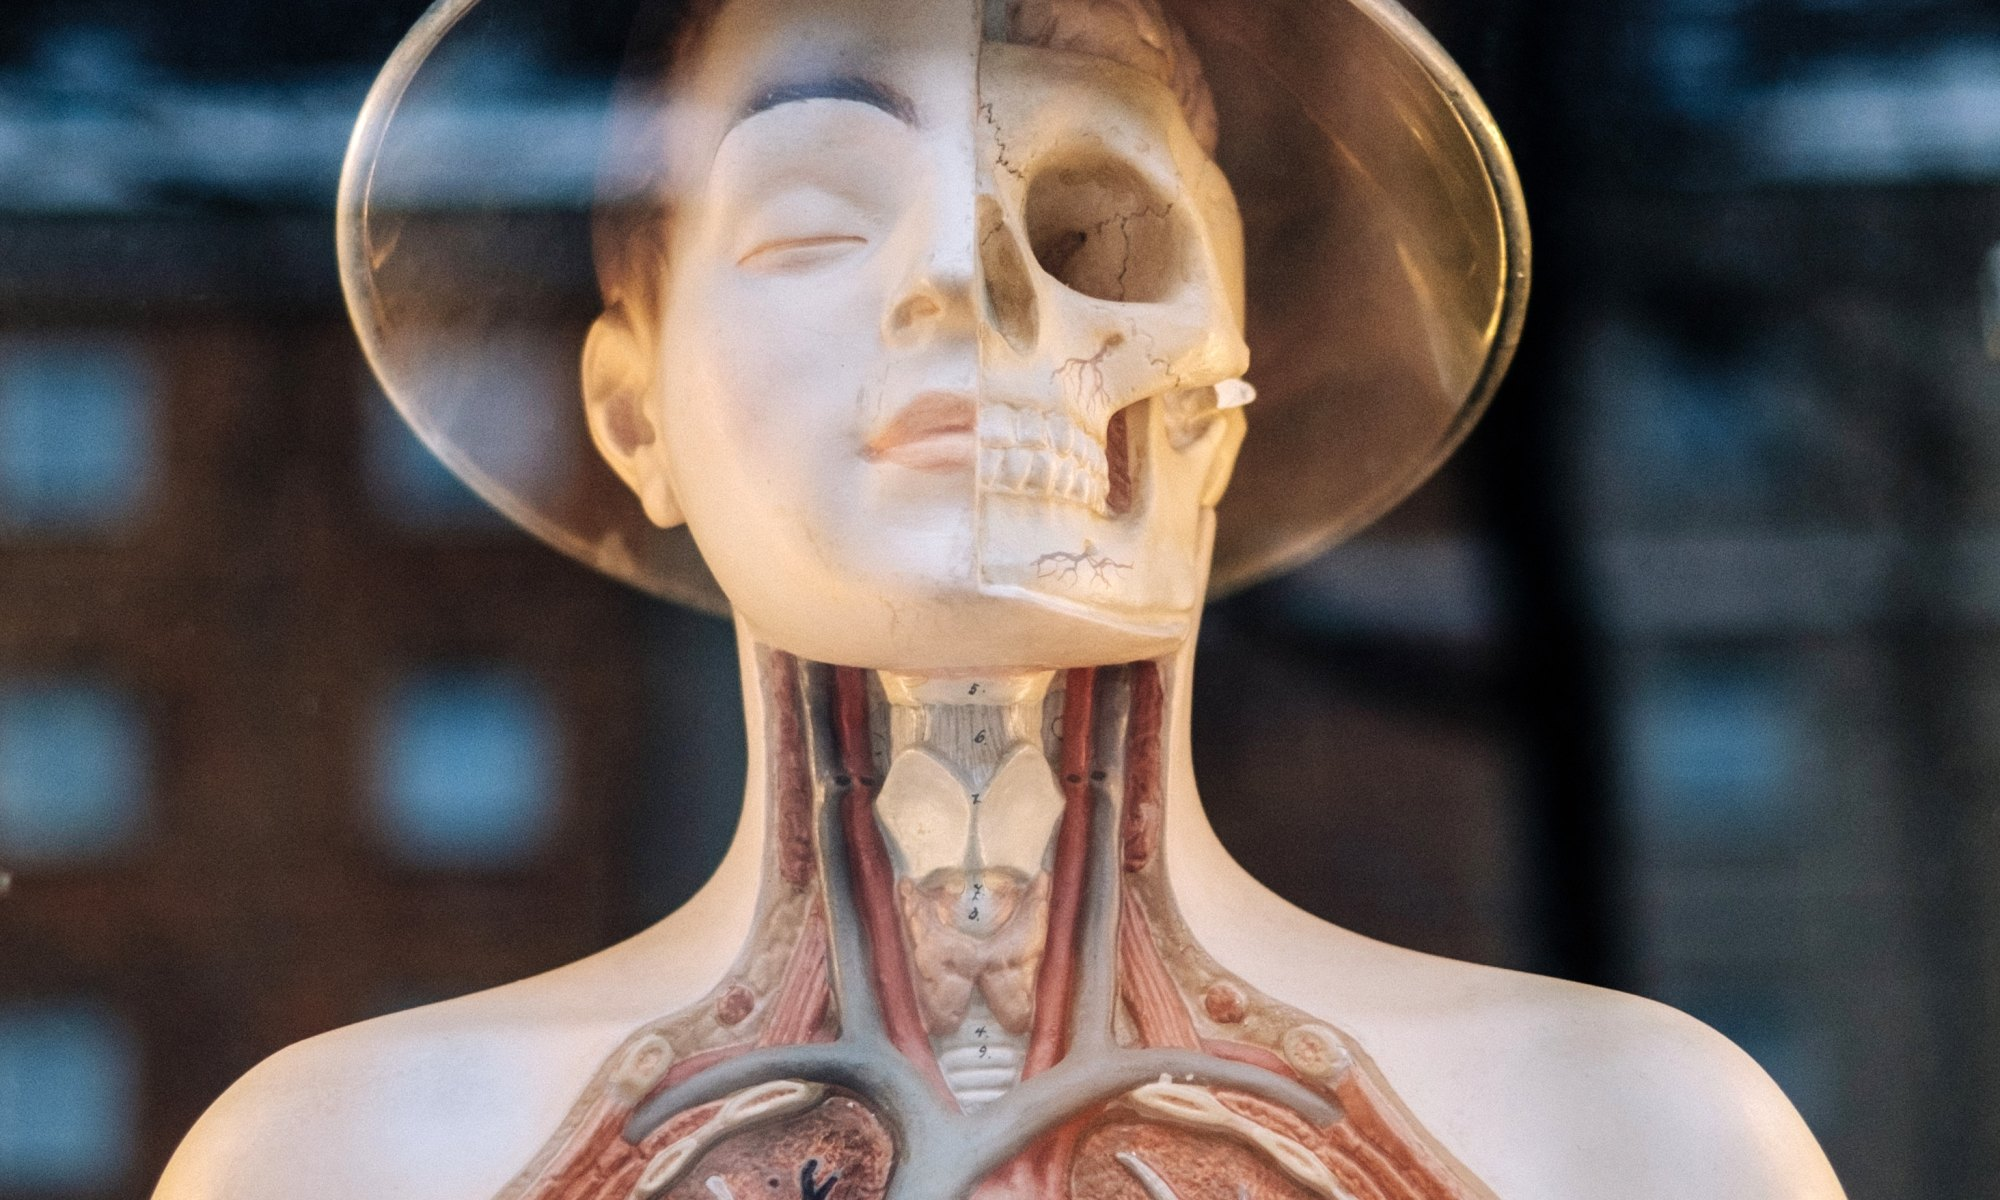 Human anatomy display of cocaine effects on the body